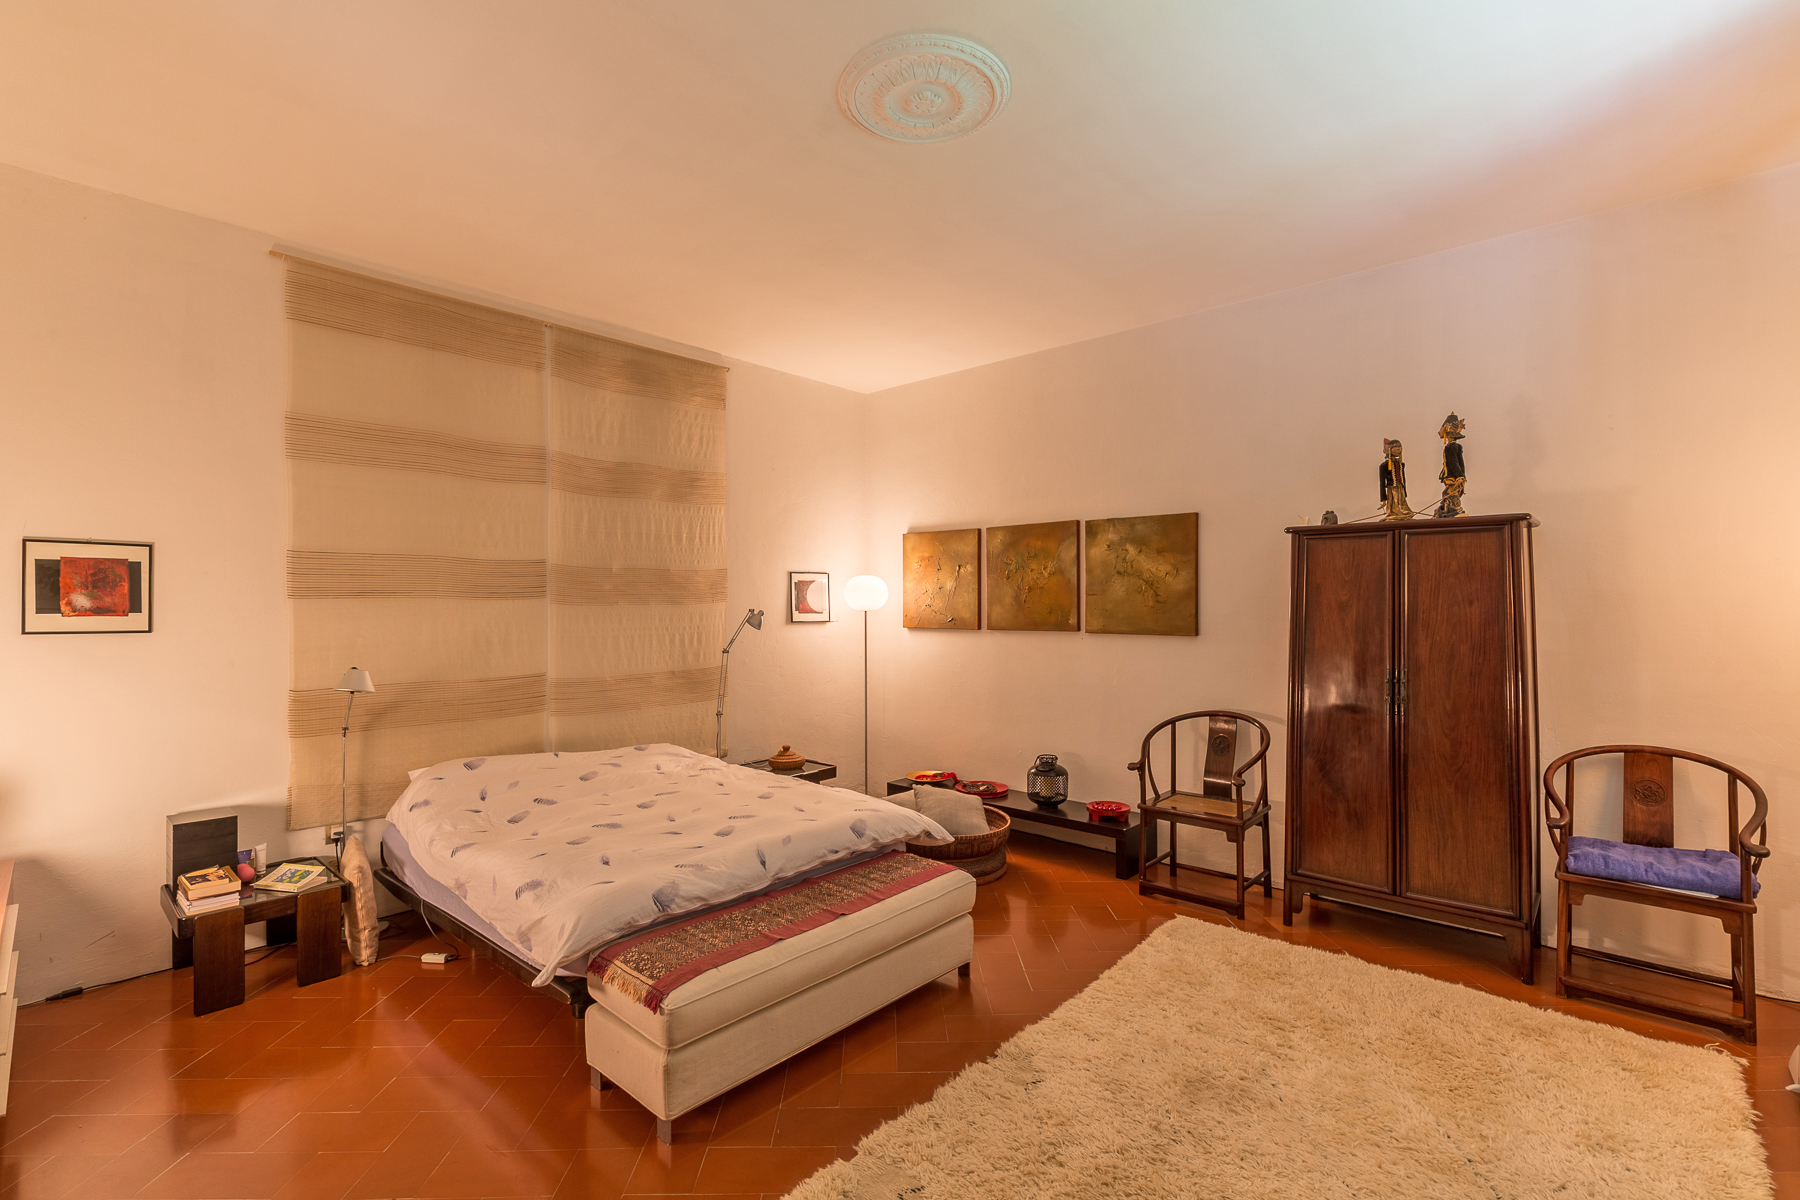 Additional photo for property listing at Luminoso appartamento con giardino privato e vista mozzafiato su Firenze Via della Lastra Firenze, Firenze 50139 Italia